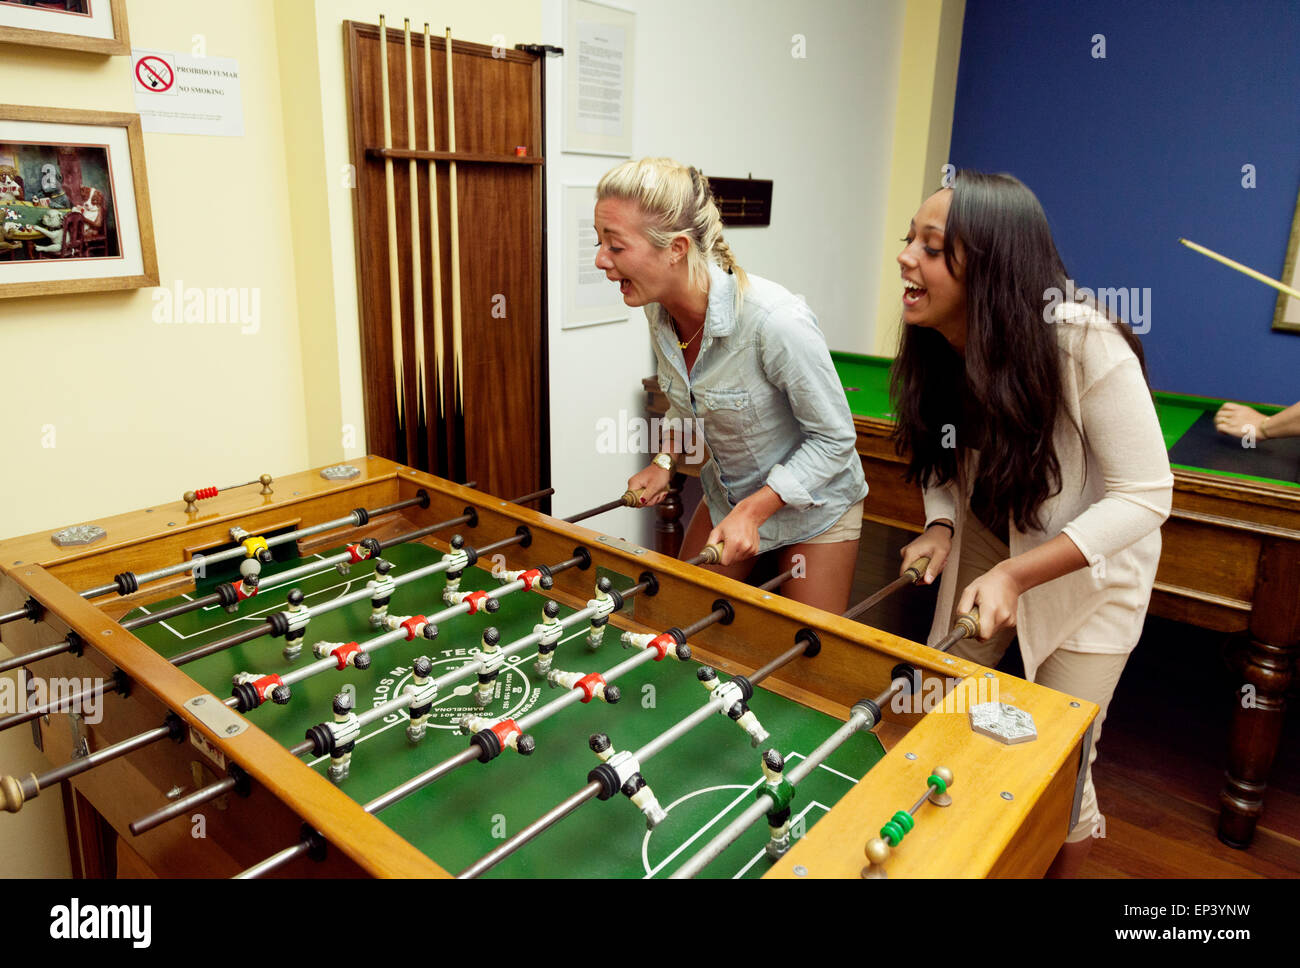 Two women playing table football in a bar, Madeira, Europe - Stock Image